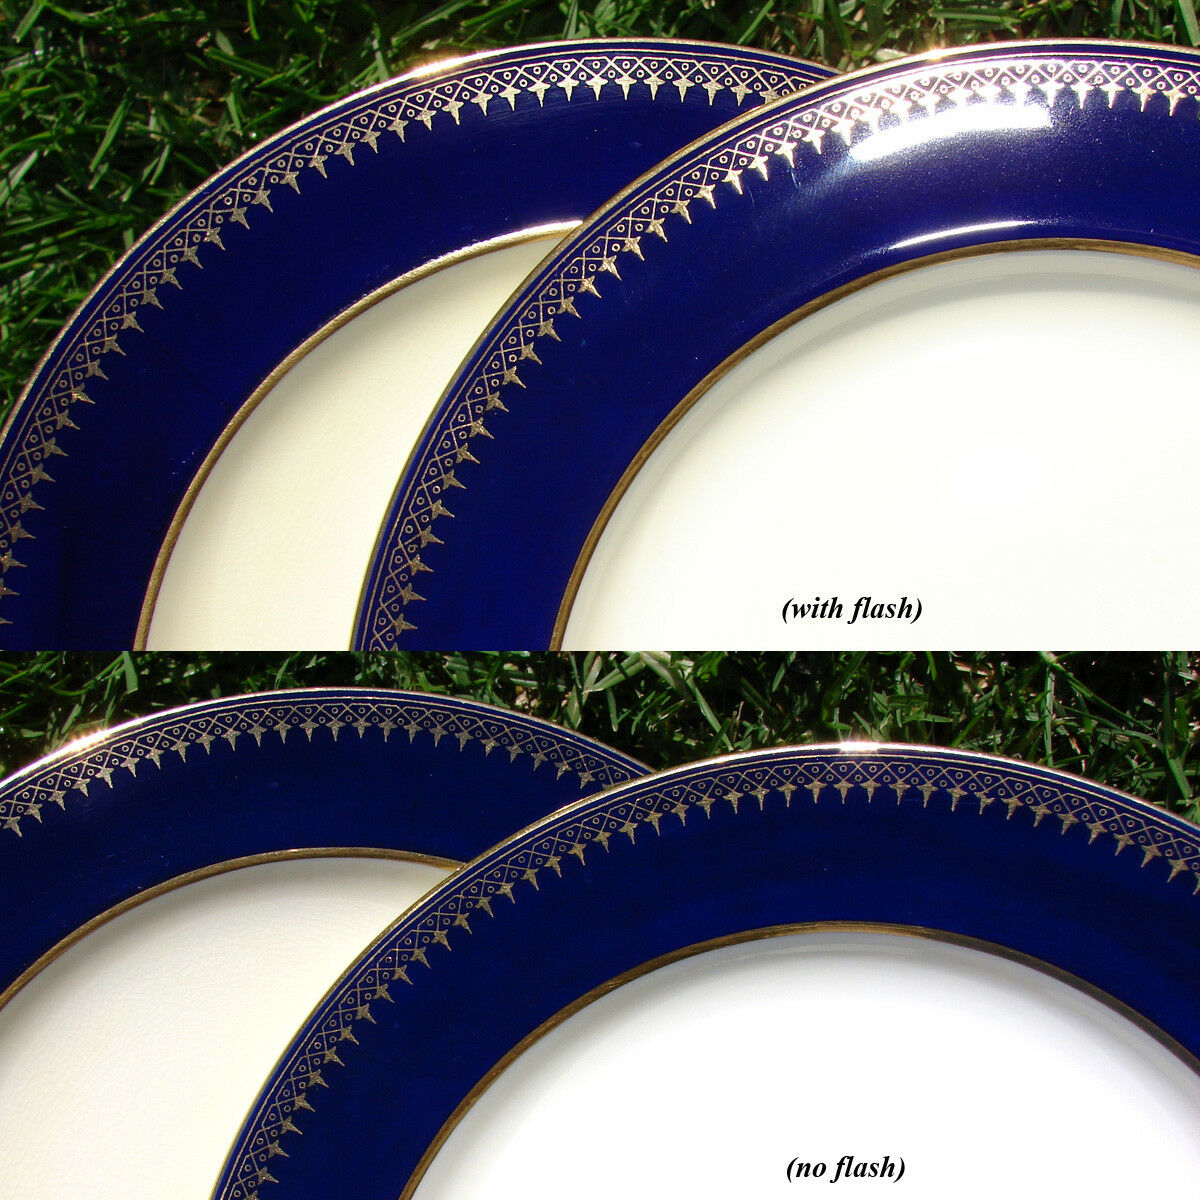 "Antique Minton 8pc Luncheon or Salad Plate Set, Theodore B. Starr, NY, 9"" Cobalt"